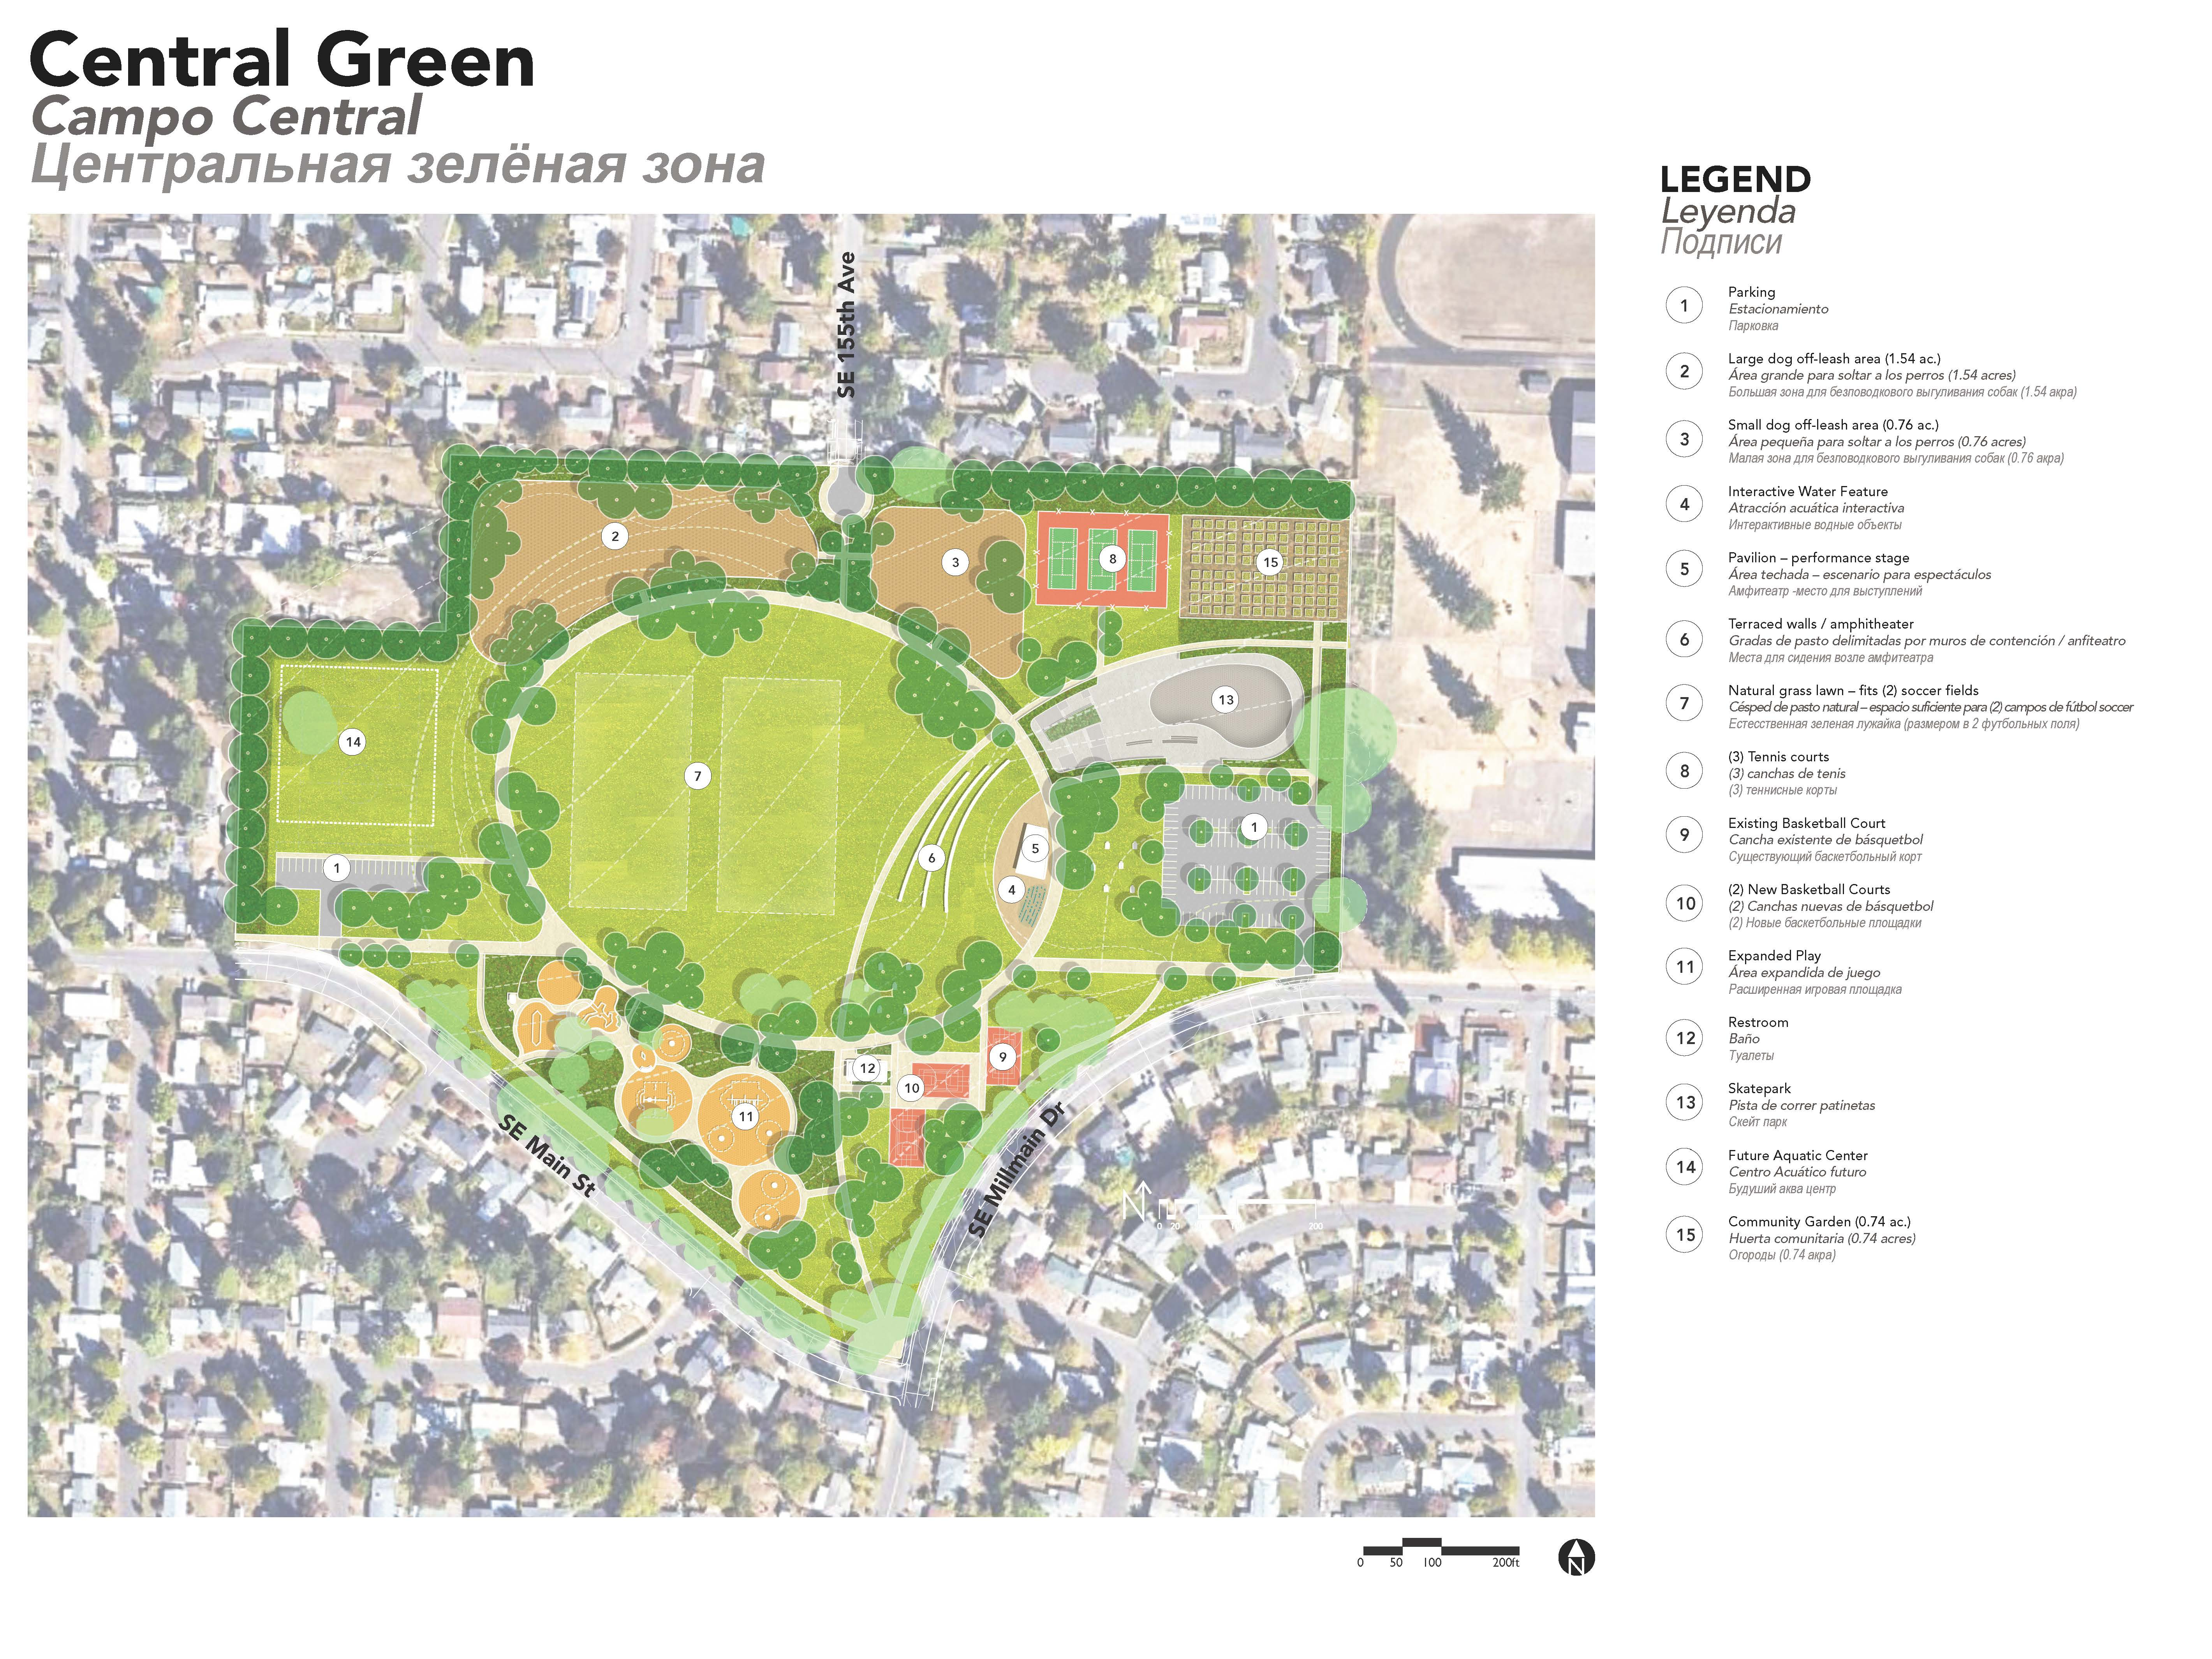 Central Green